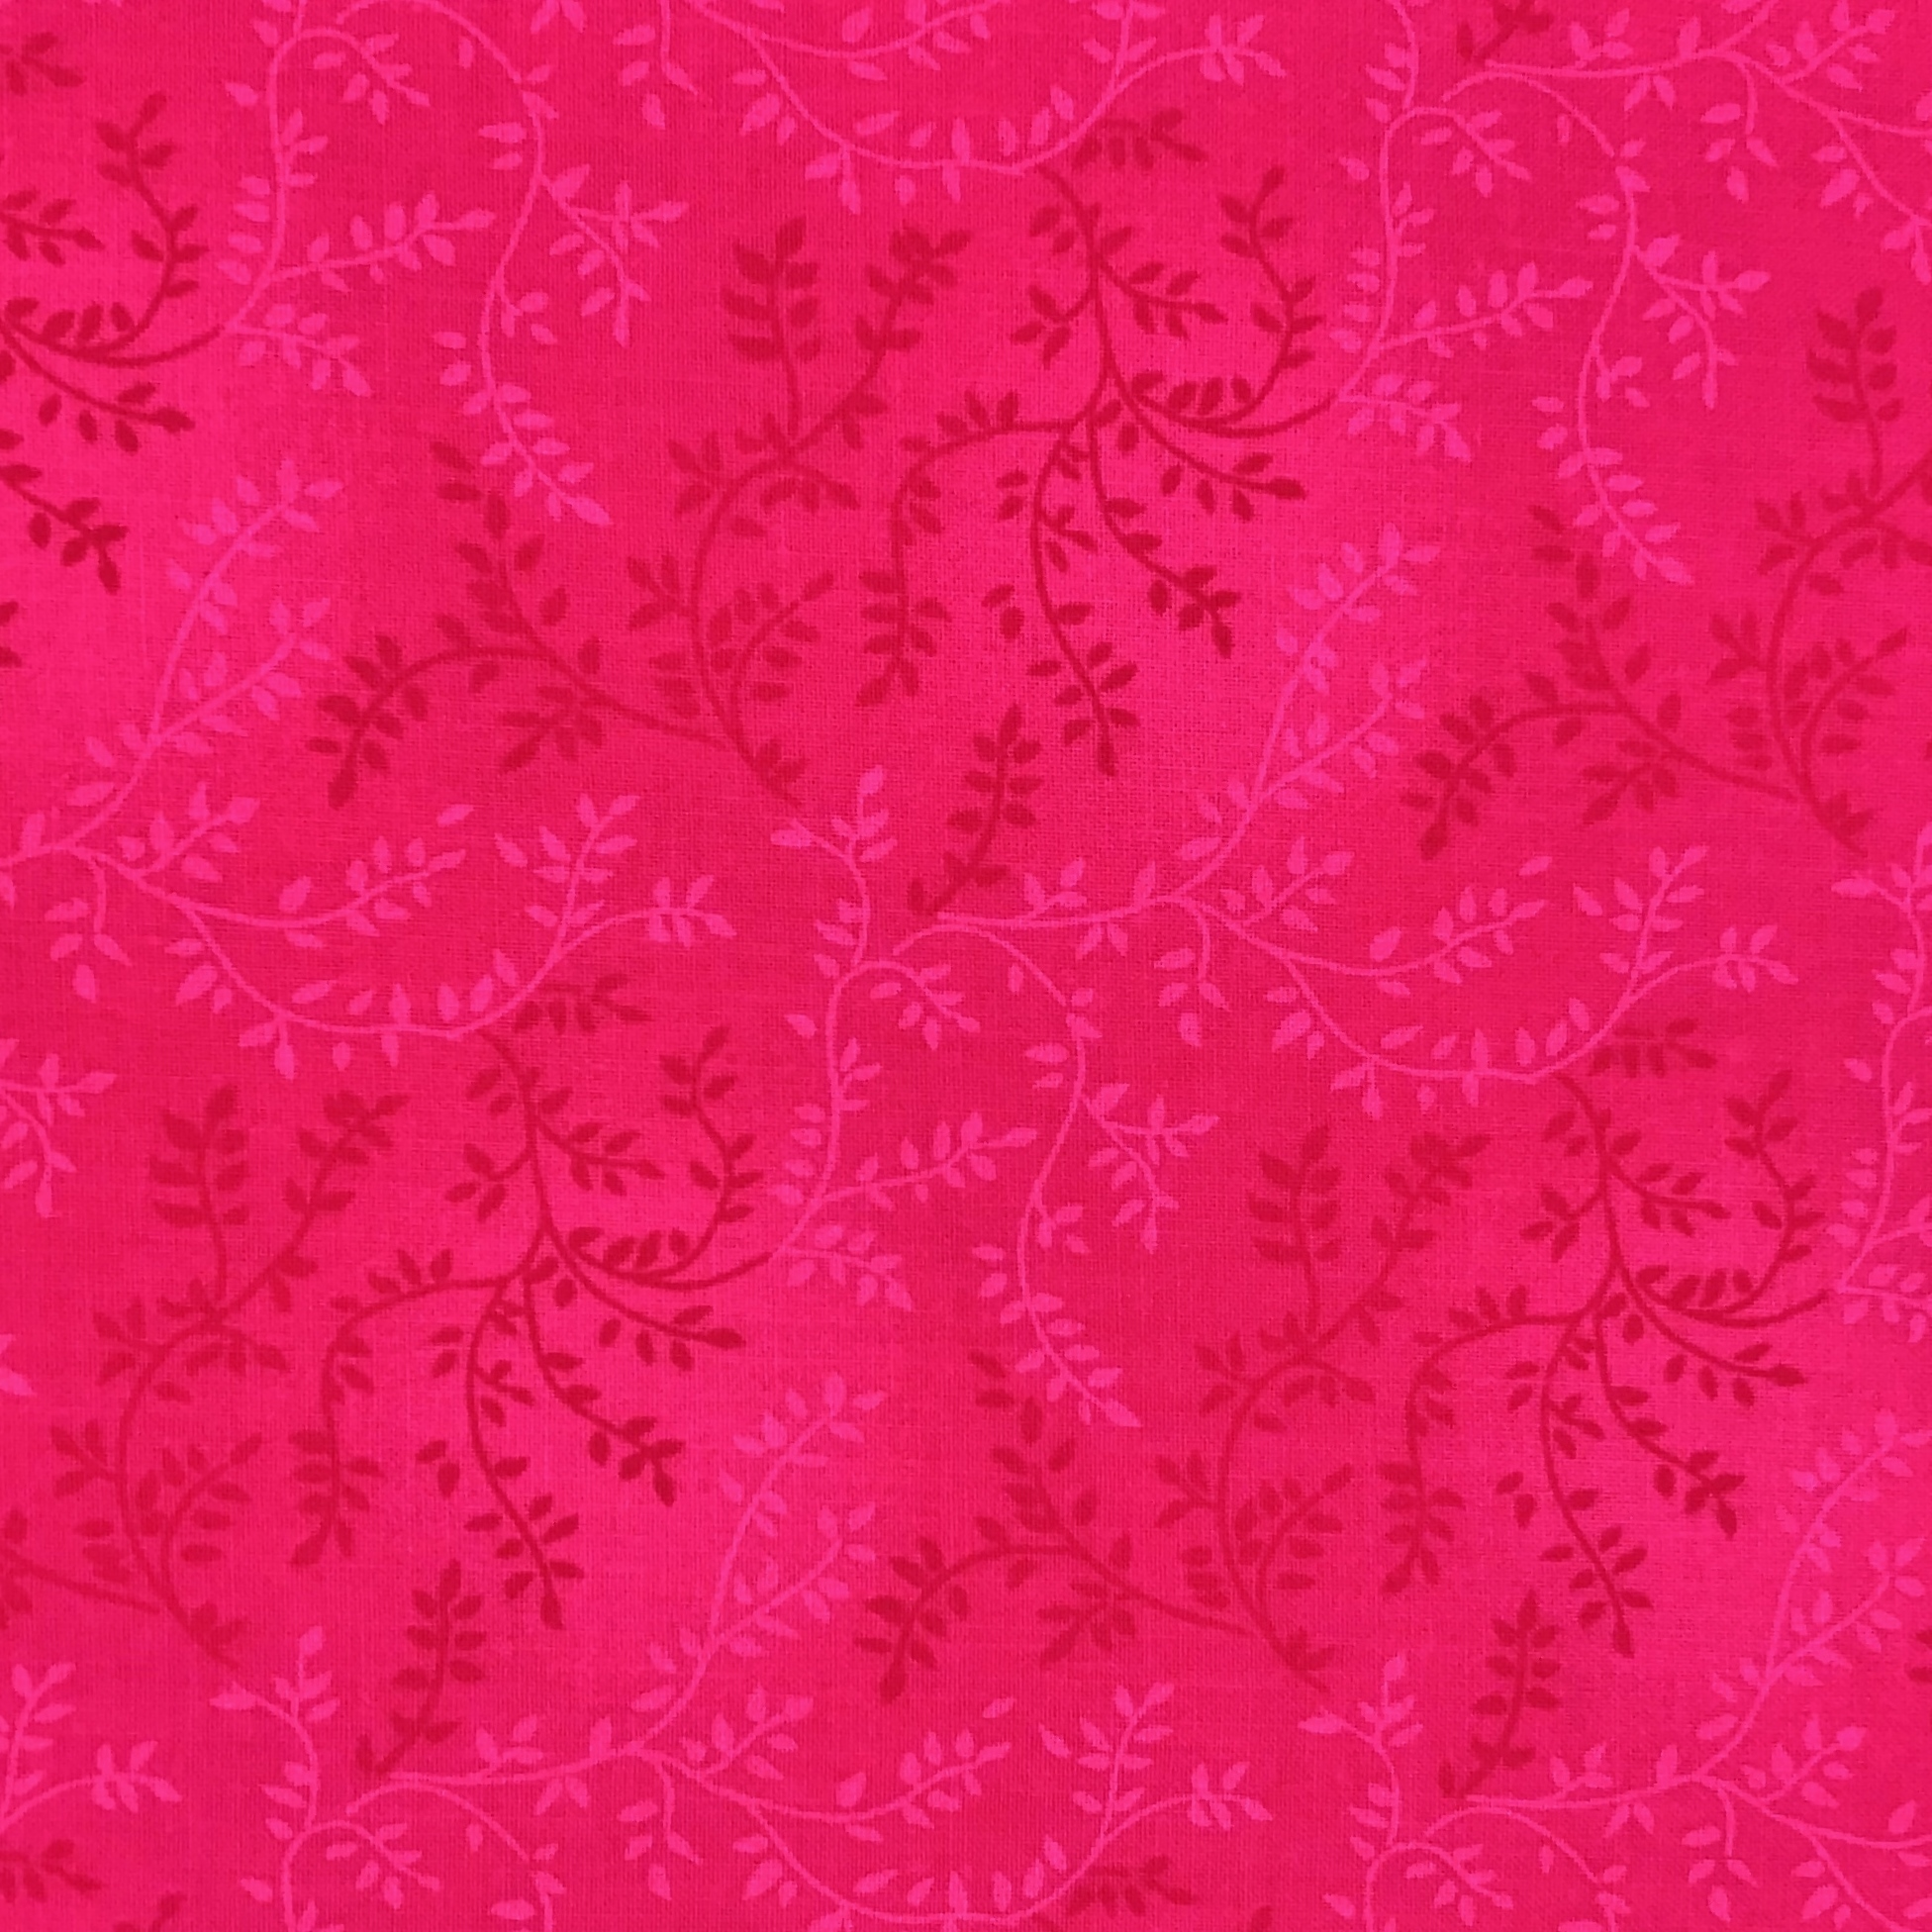 Sew Easy VINE Dark Pink Quilt backing 108